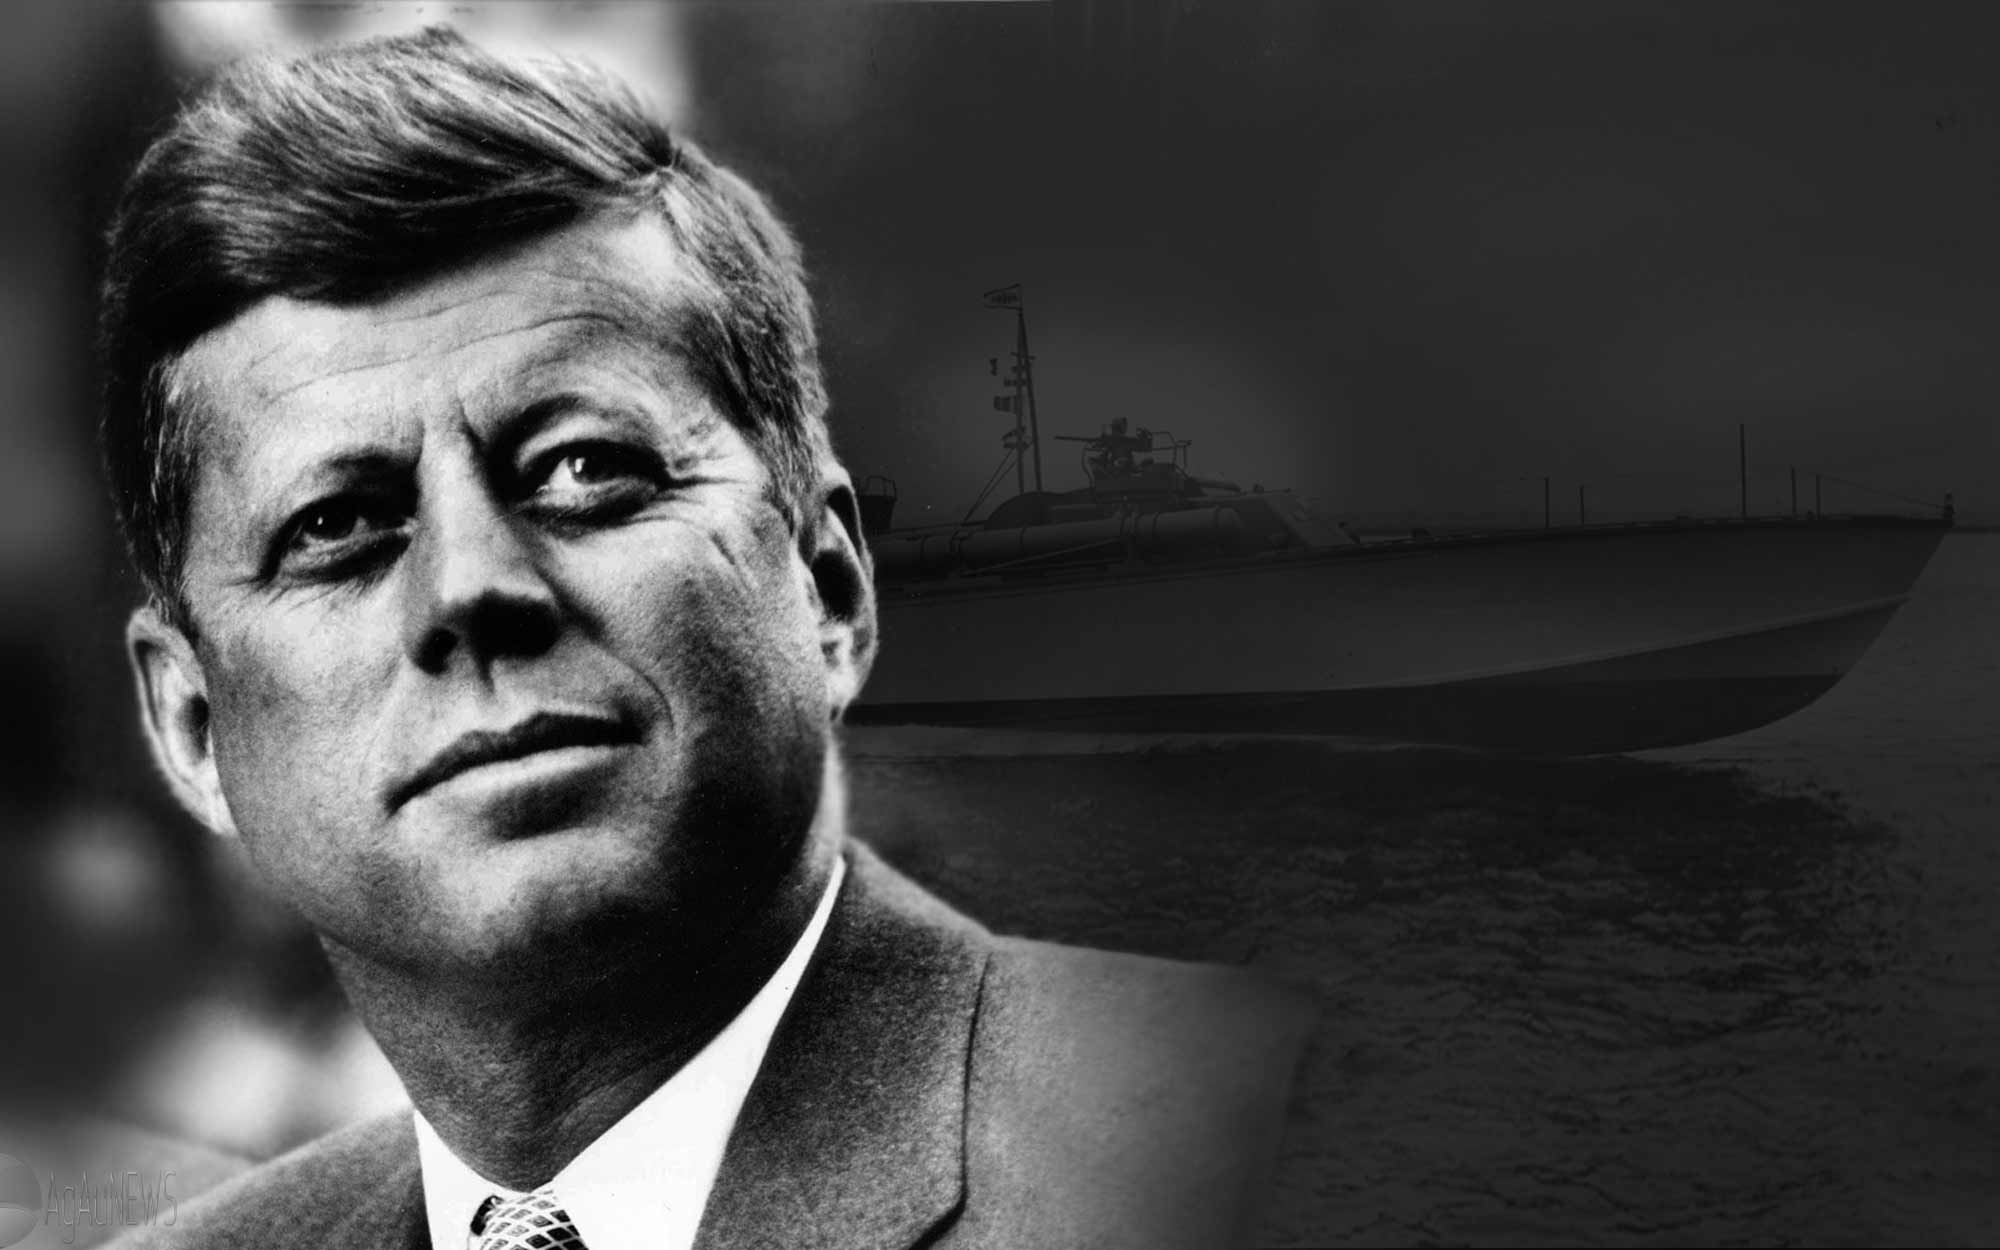 president john f kennedy pursuit of John f kennedy becomes the 35th president of the united states john f kennedy was sworn in as the 35th president on january 20, 1961 in his inaugural speech he spoke of the need for all americans to be active citizens.